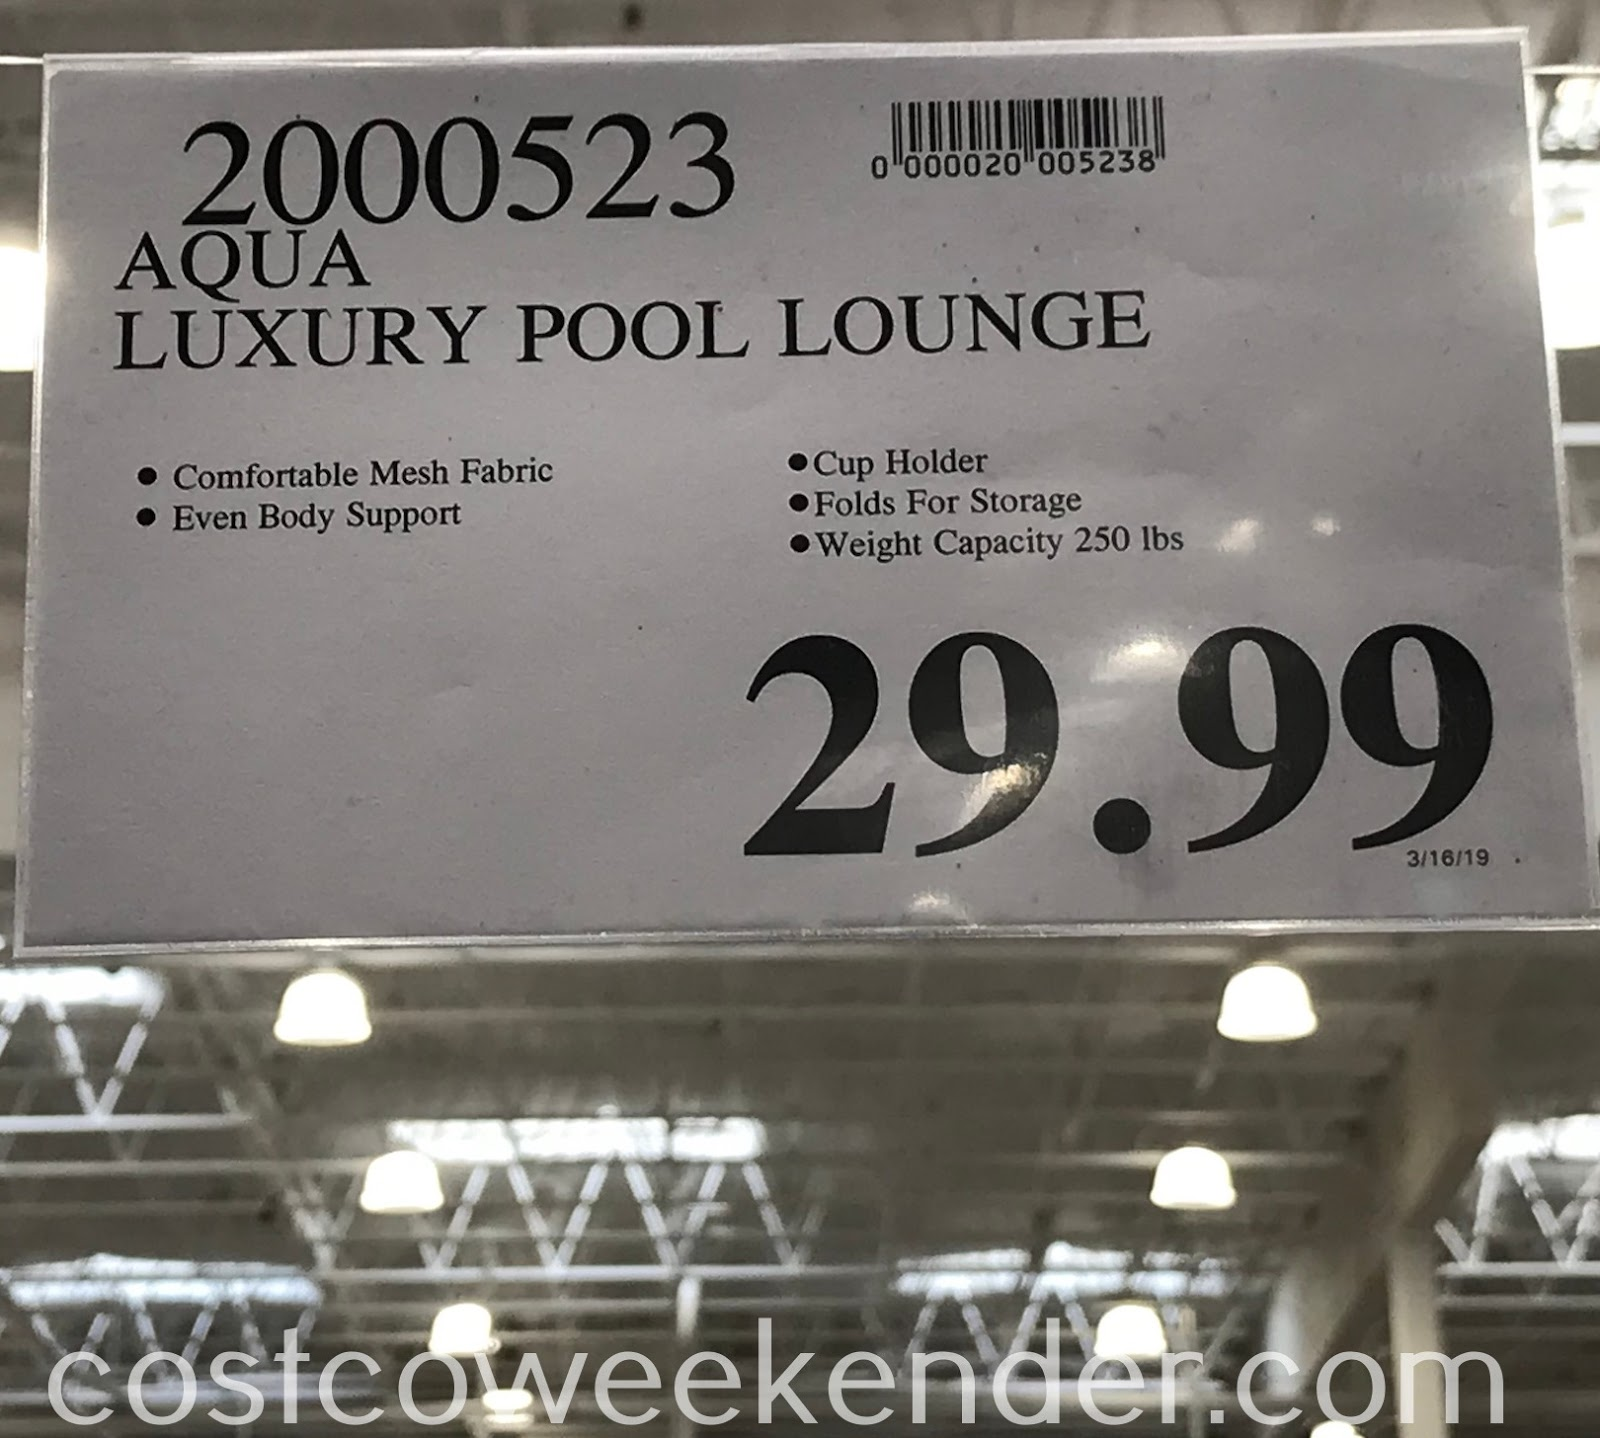 Deal for the Aqua Luxury Pool Lounge at Costco